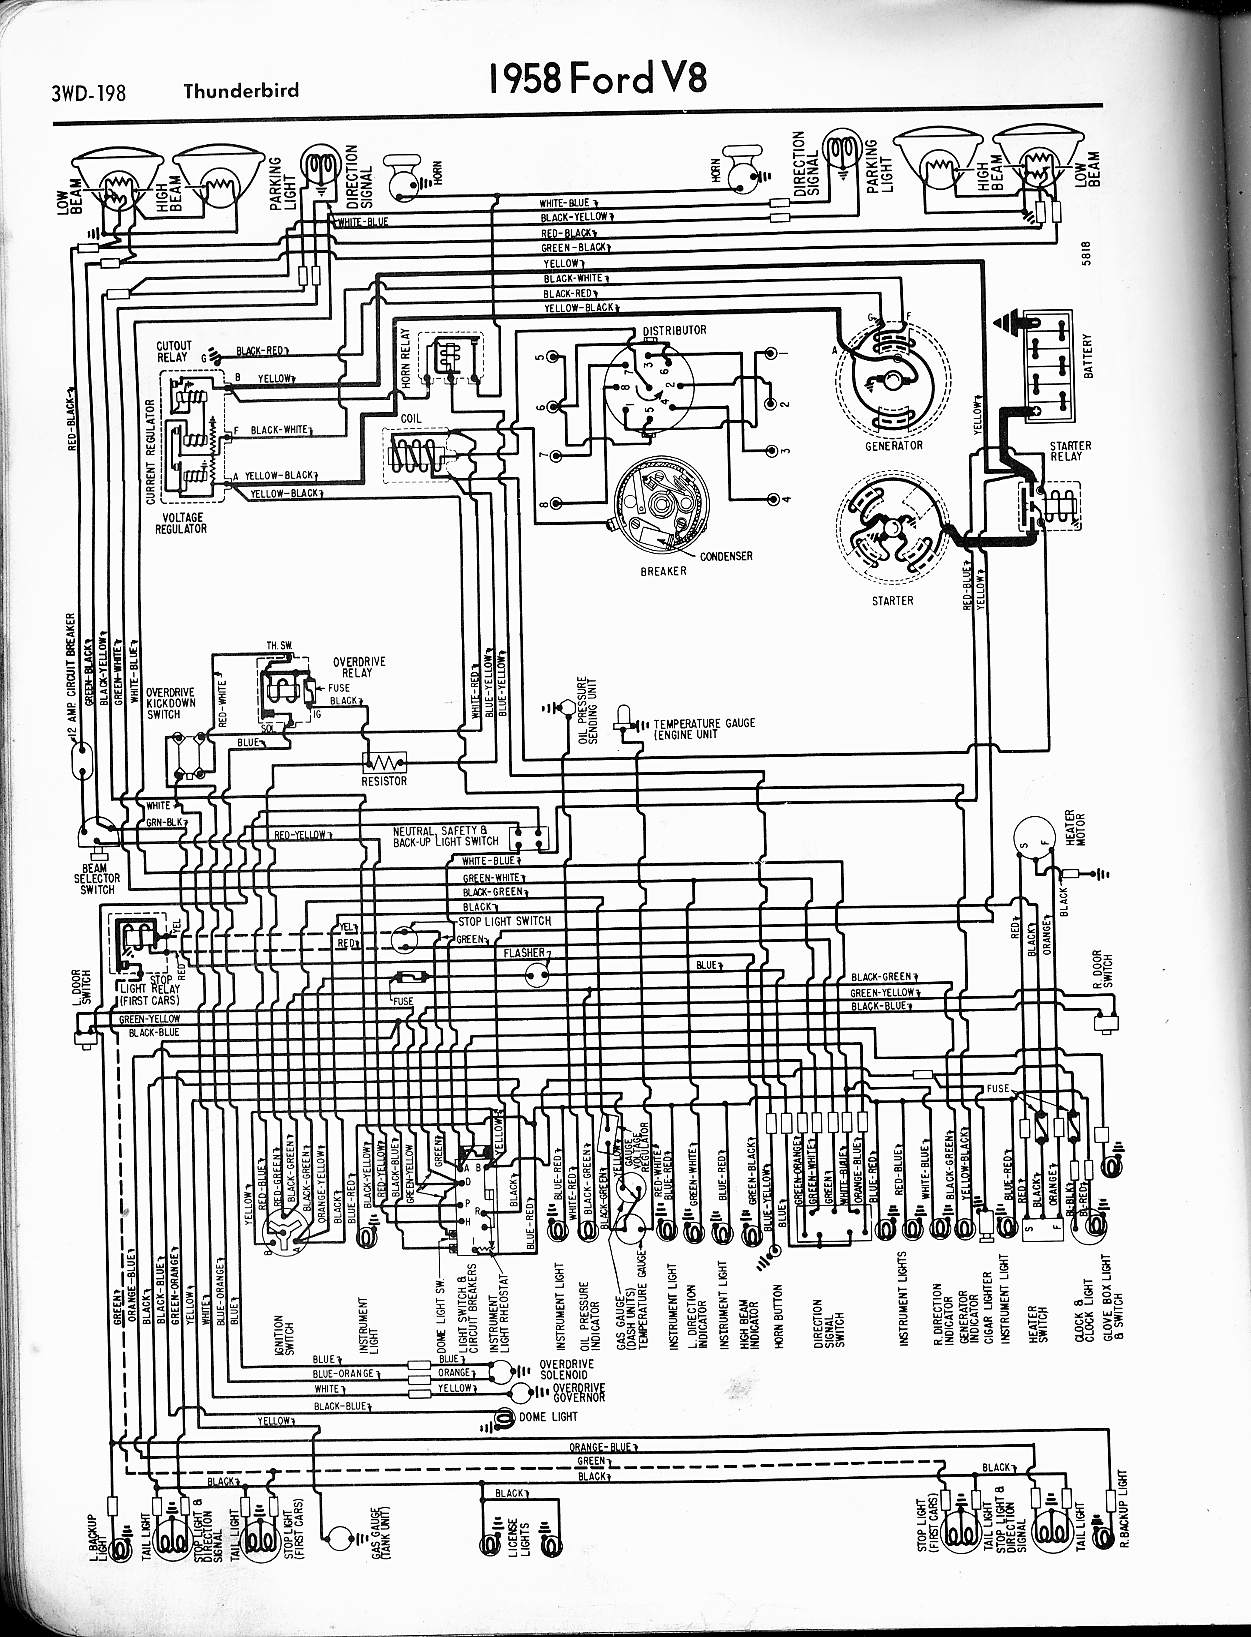 MWire5765 198 57 65 ford wiring diagrams Mercury Wiring Diagram at eliteediting.co